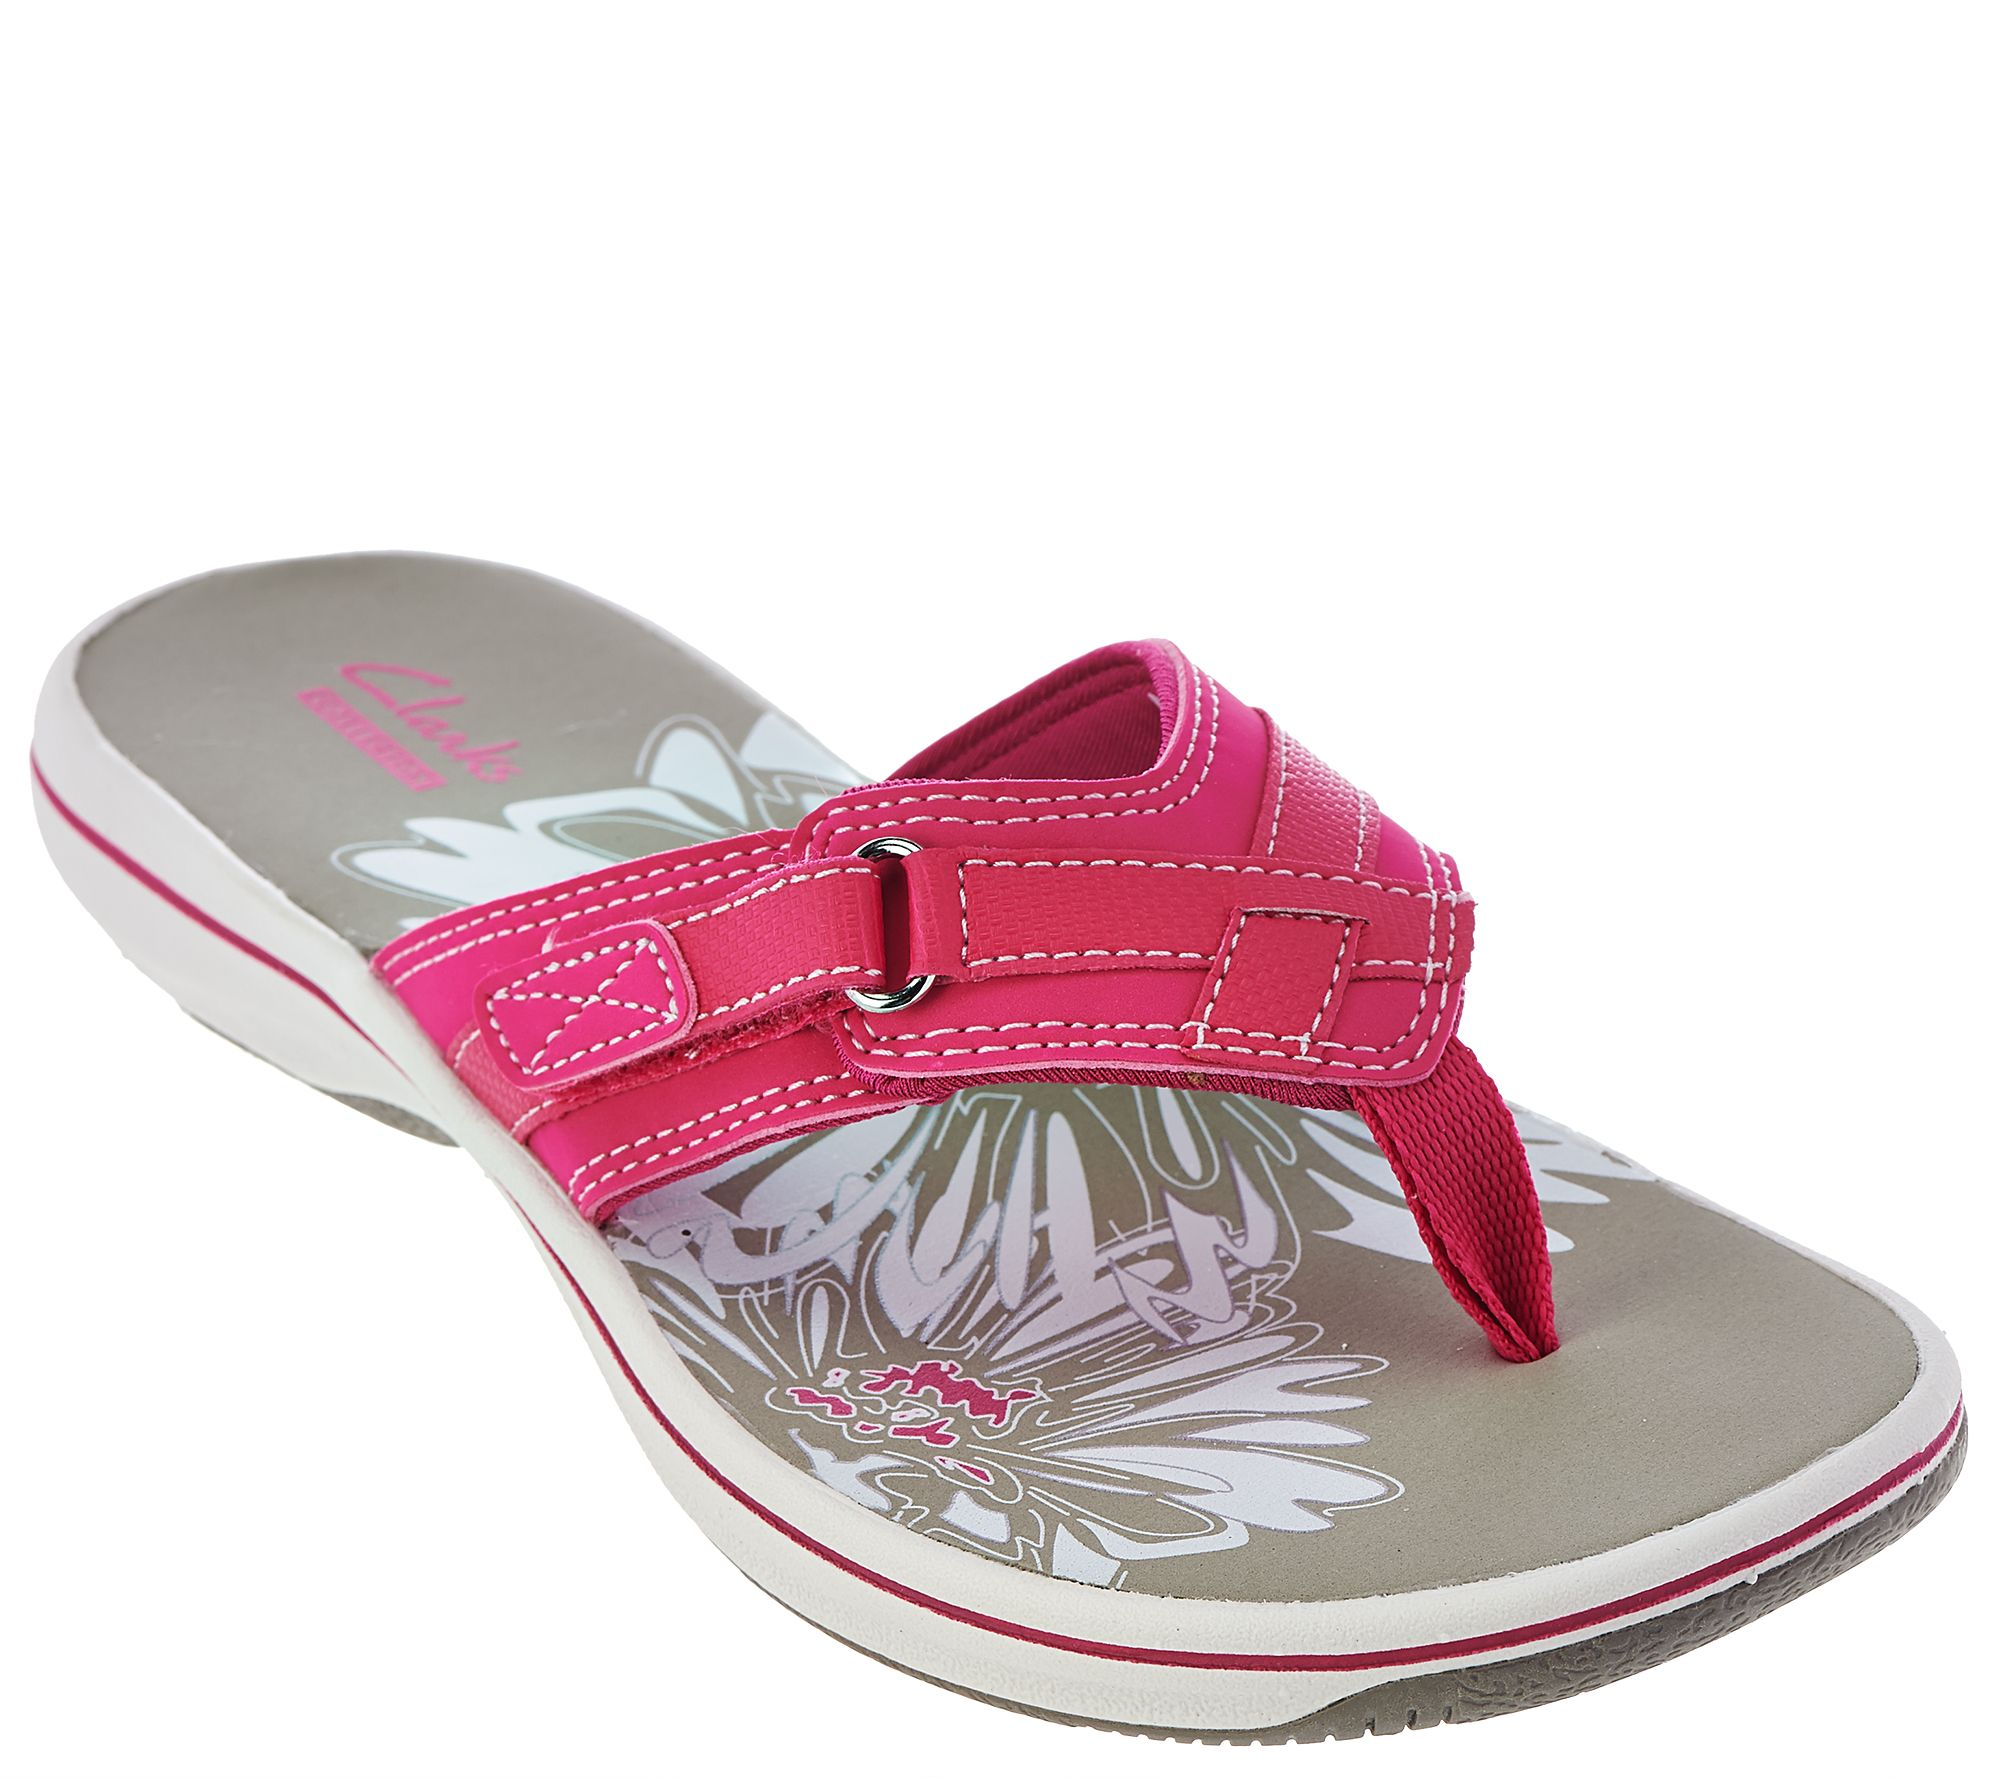 fashion Style sale online Clarks Sport Thong Sandals - Breeze Sea cheap newest ENfQ6PHo